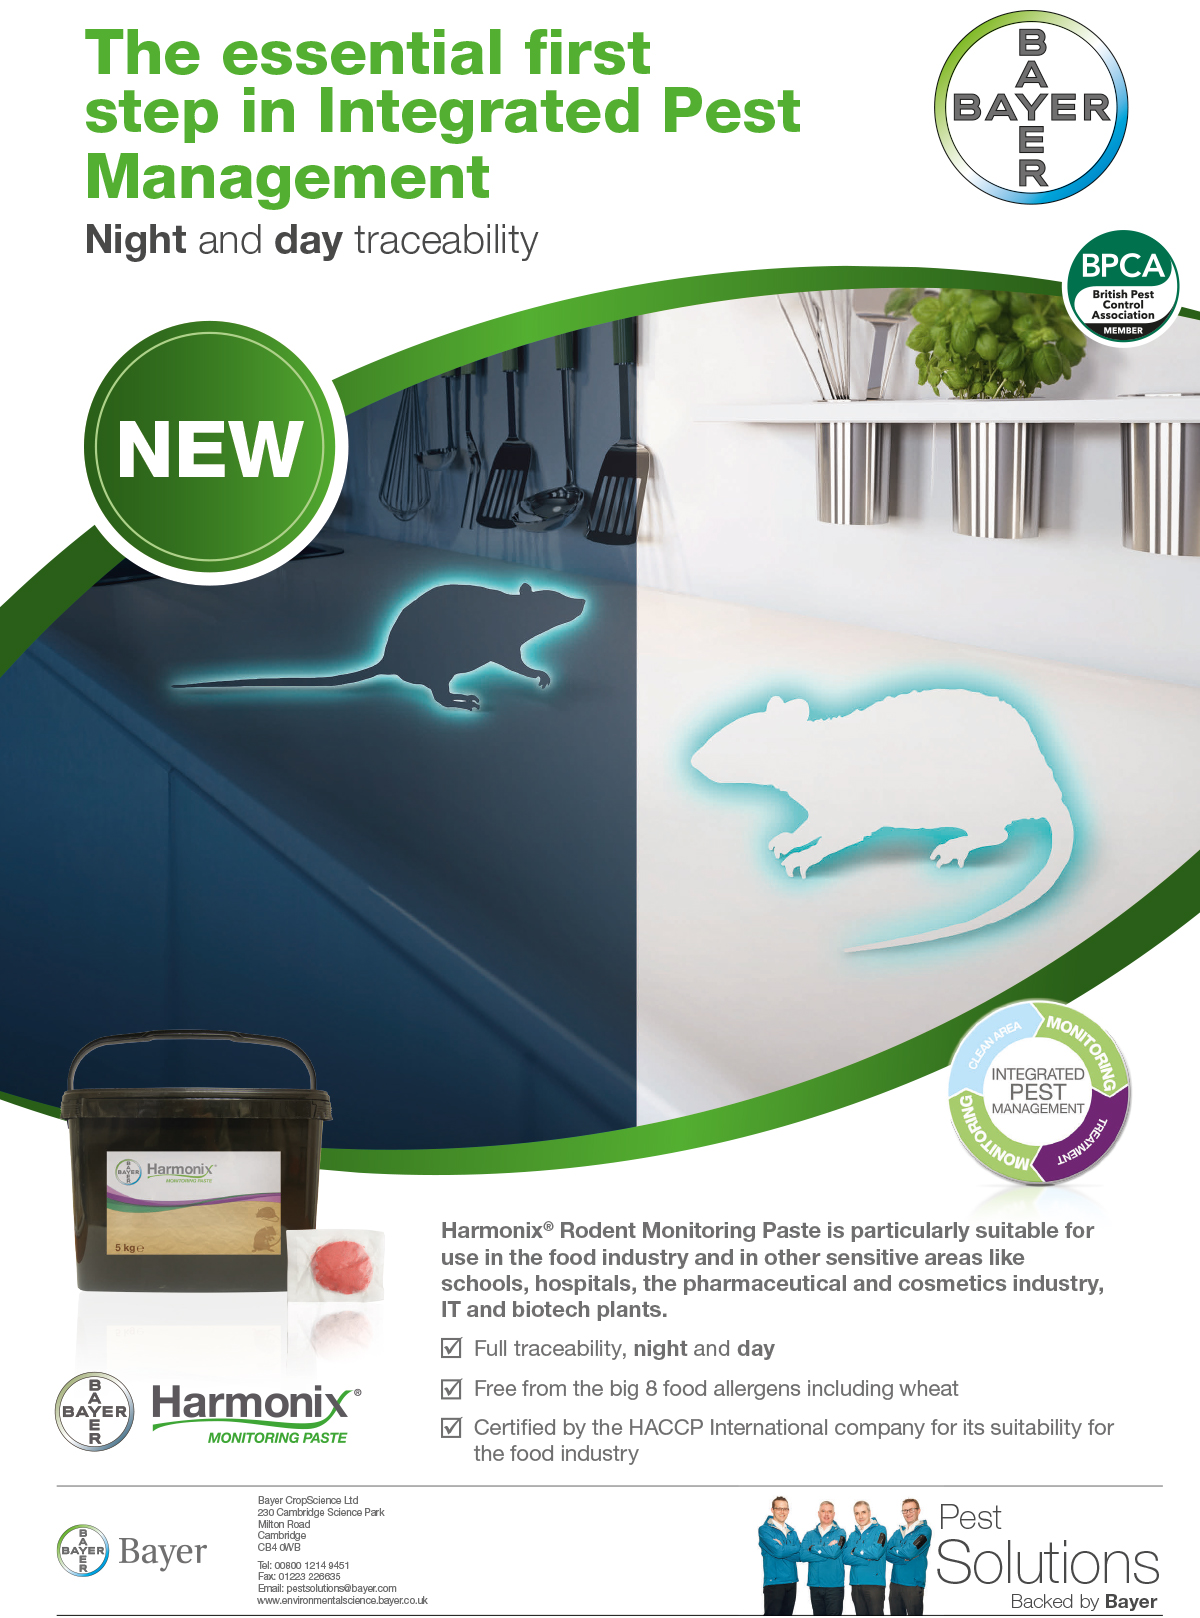 Night and day traceability